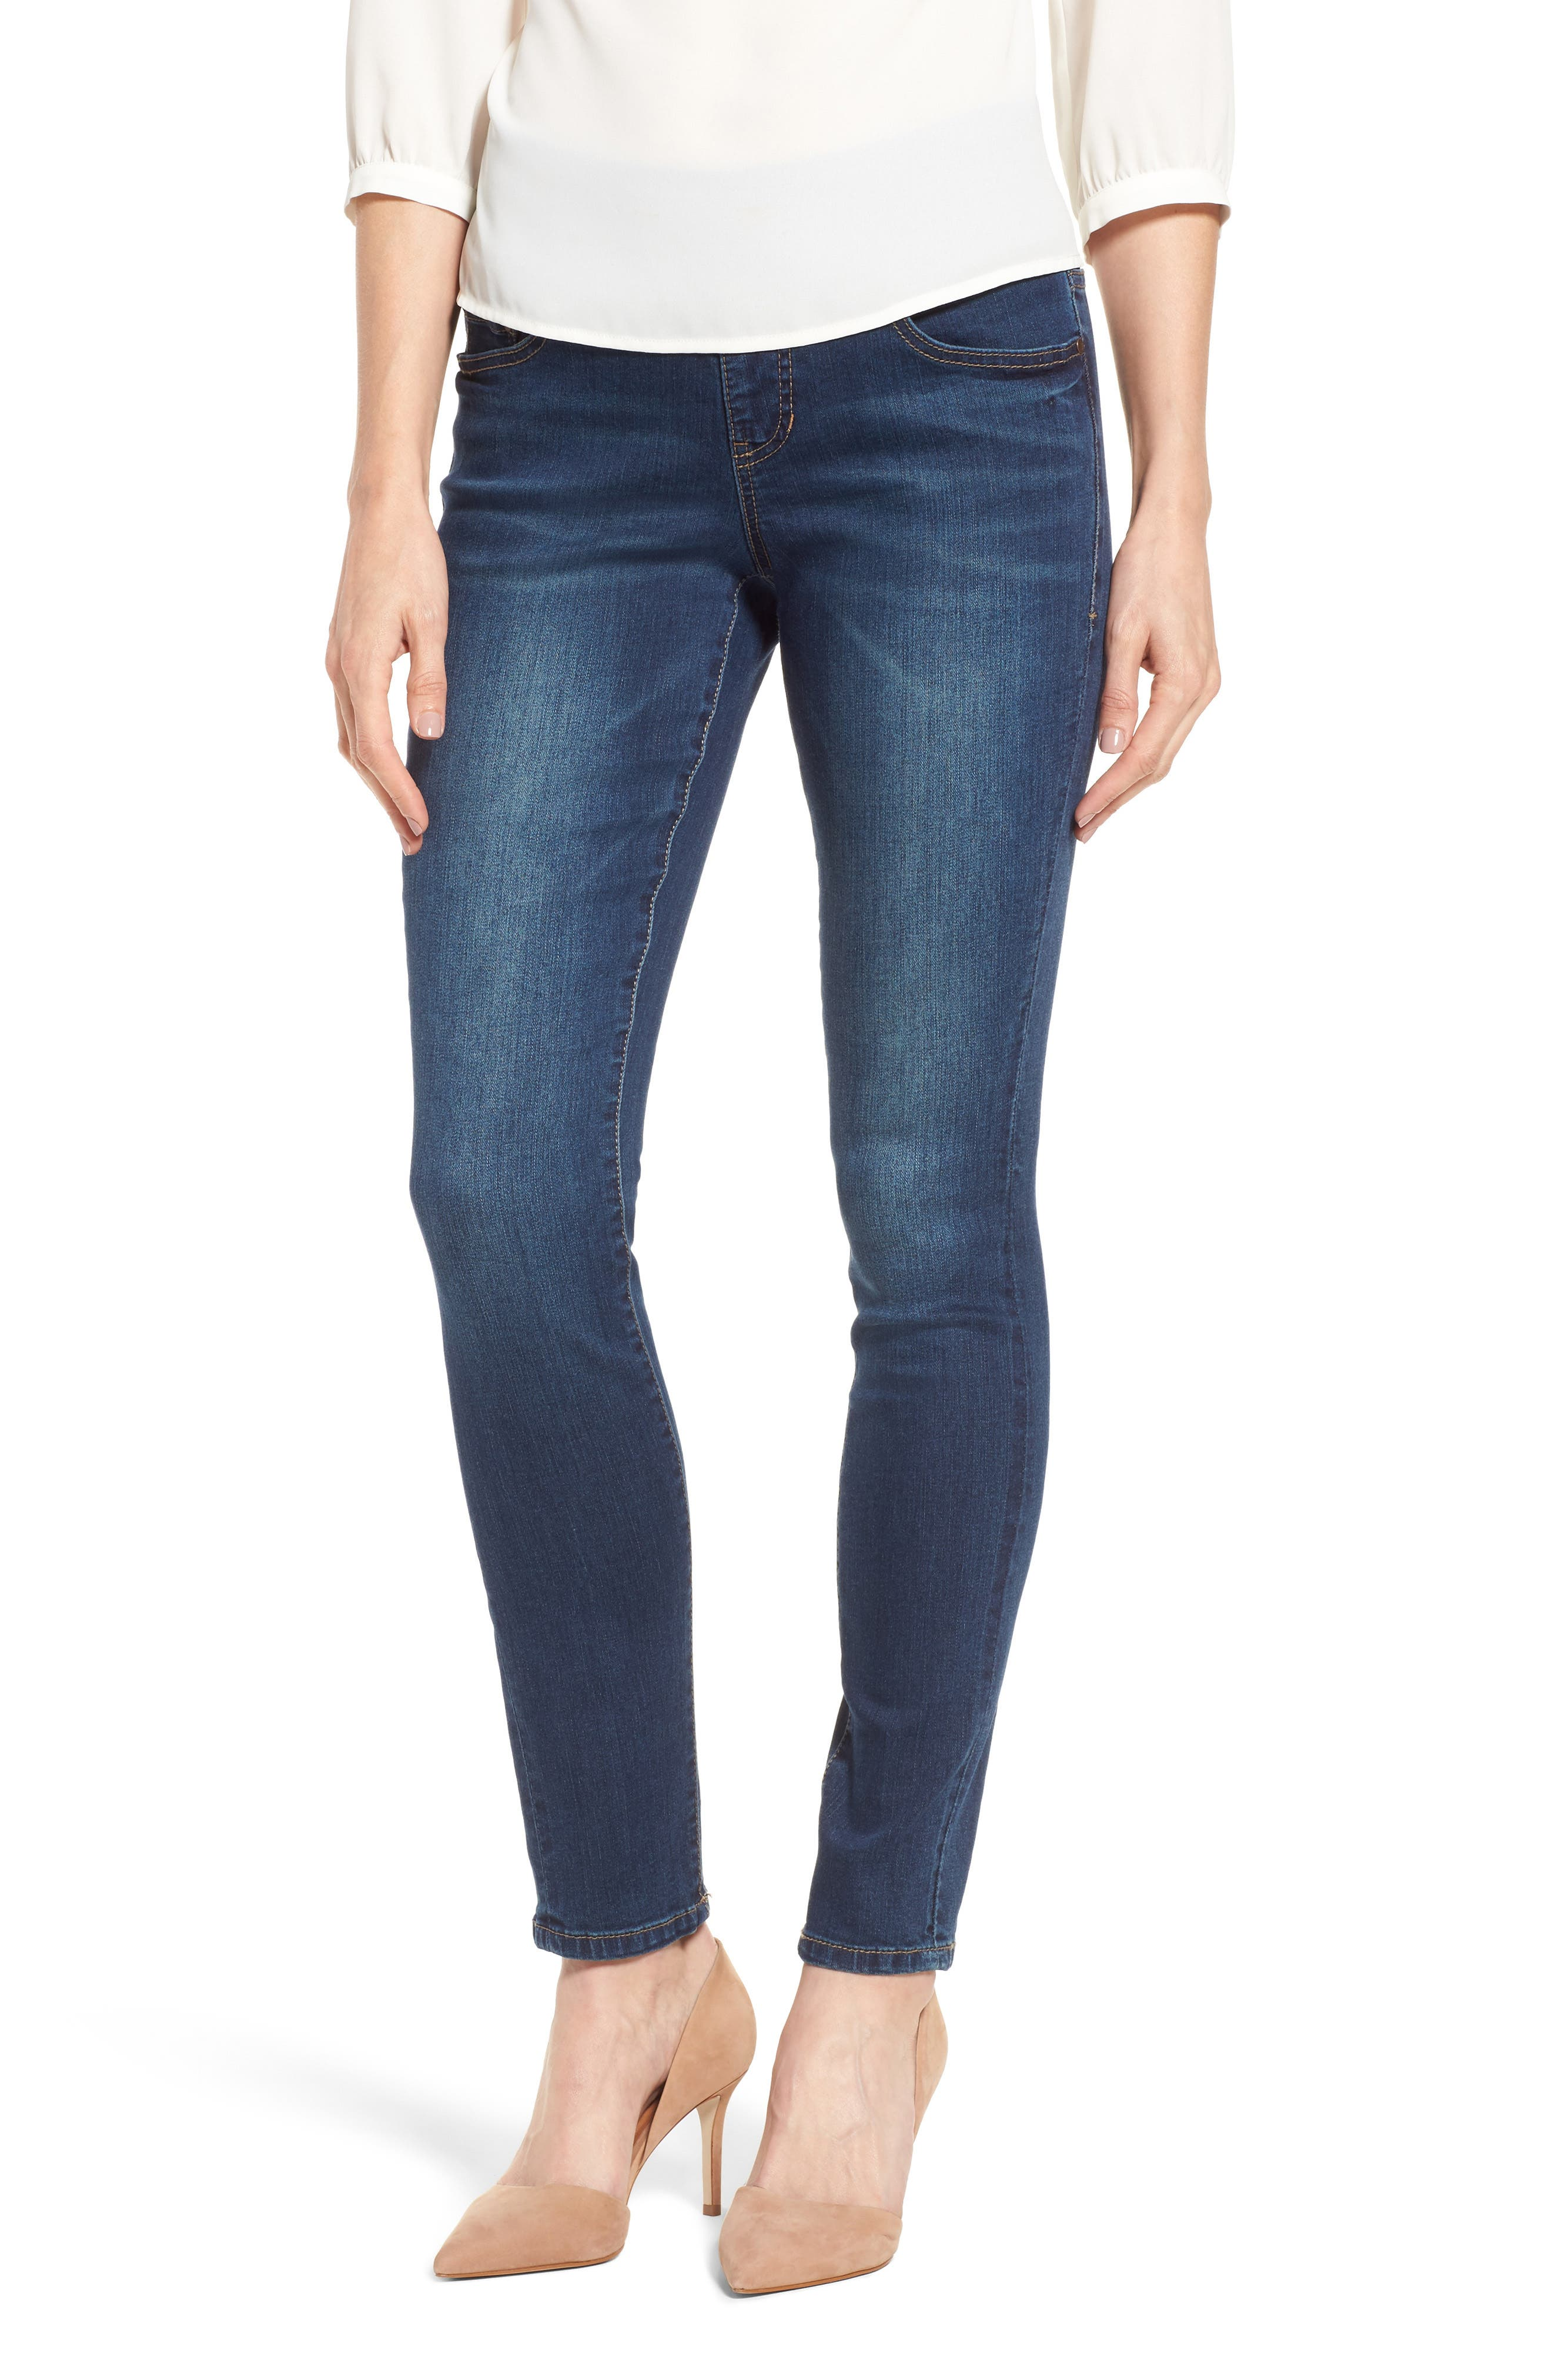 Jag Jeans Nora Stretch Skinny Jeans